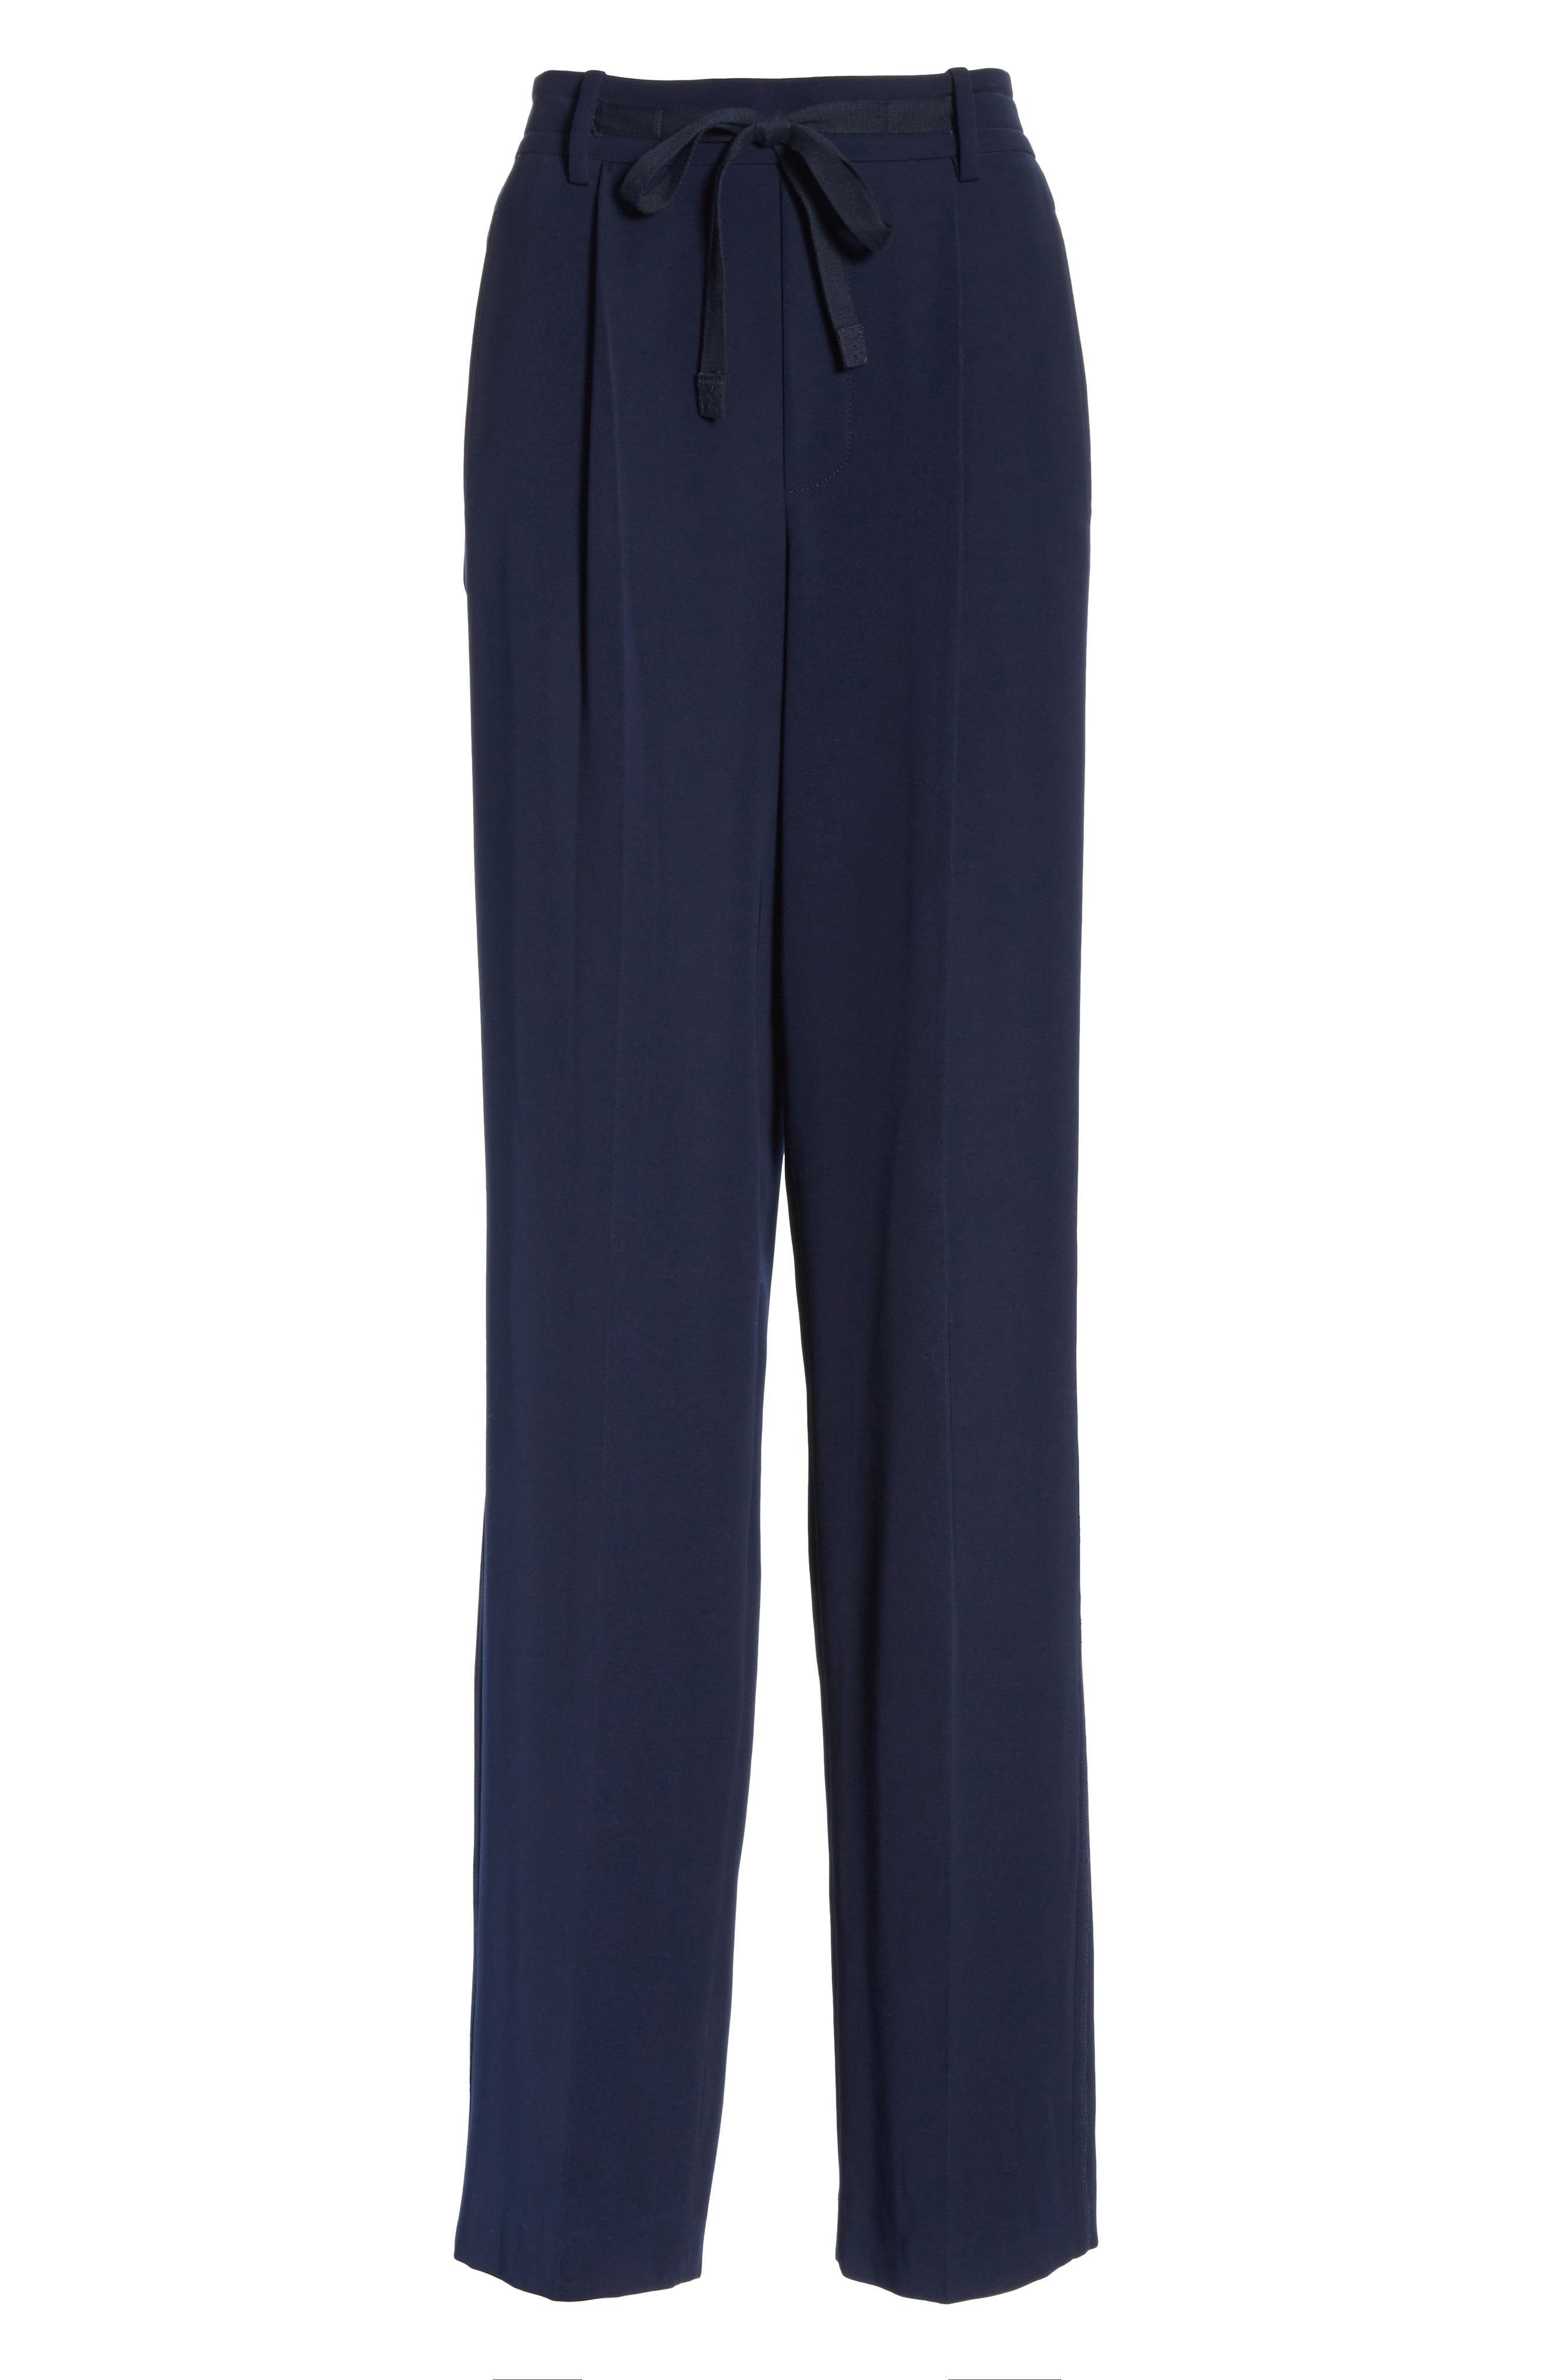 Wide Leg Pull-On Pants,                             Alternate thumbnail 6, color,                             NAVY